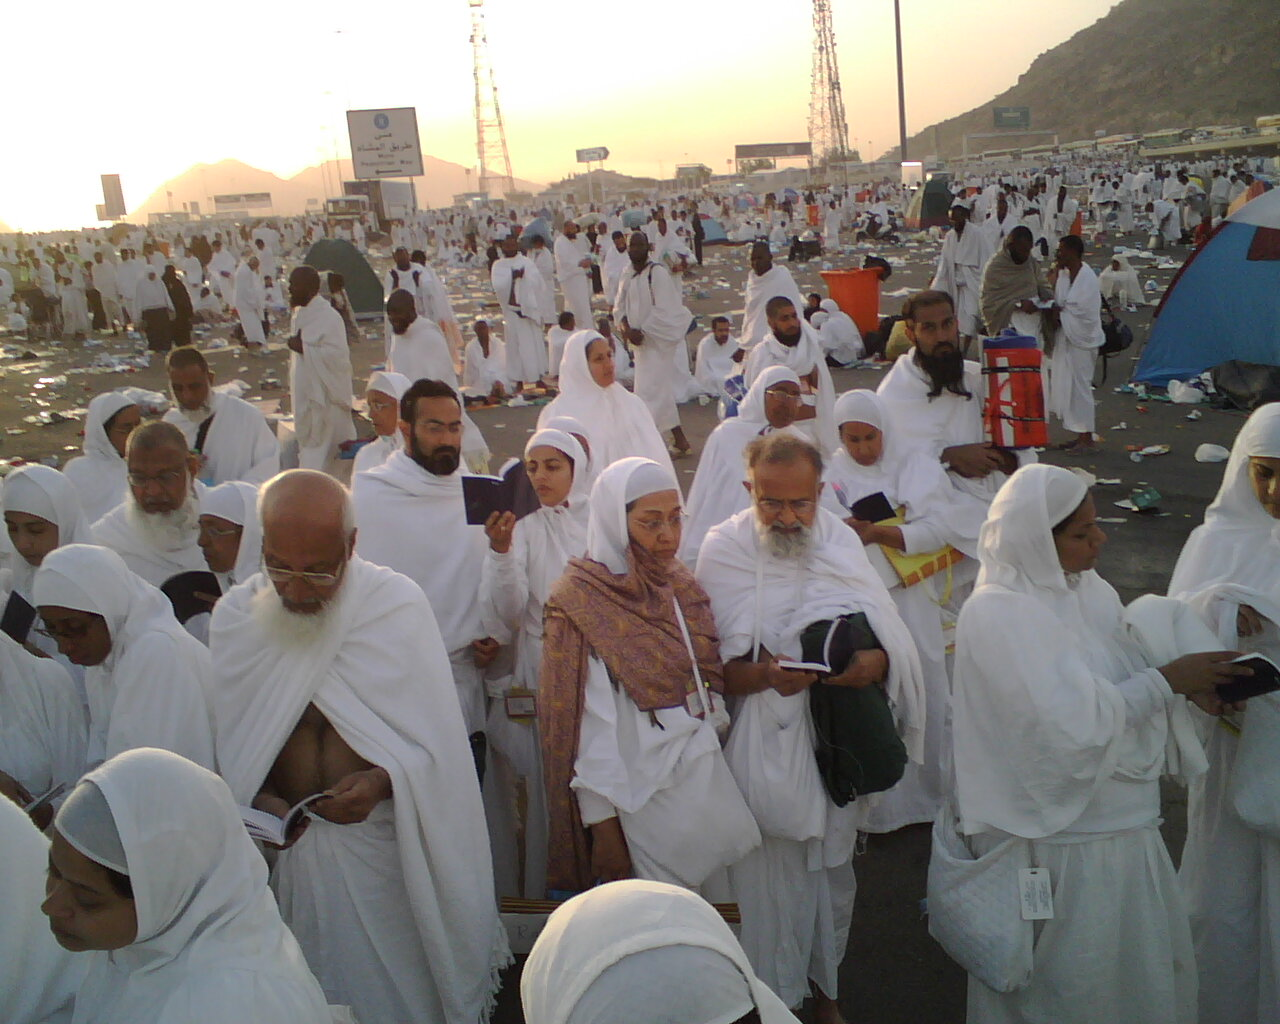 Photos from Hajj